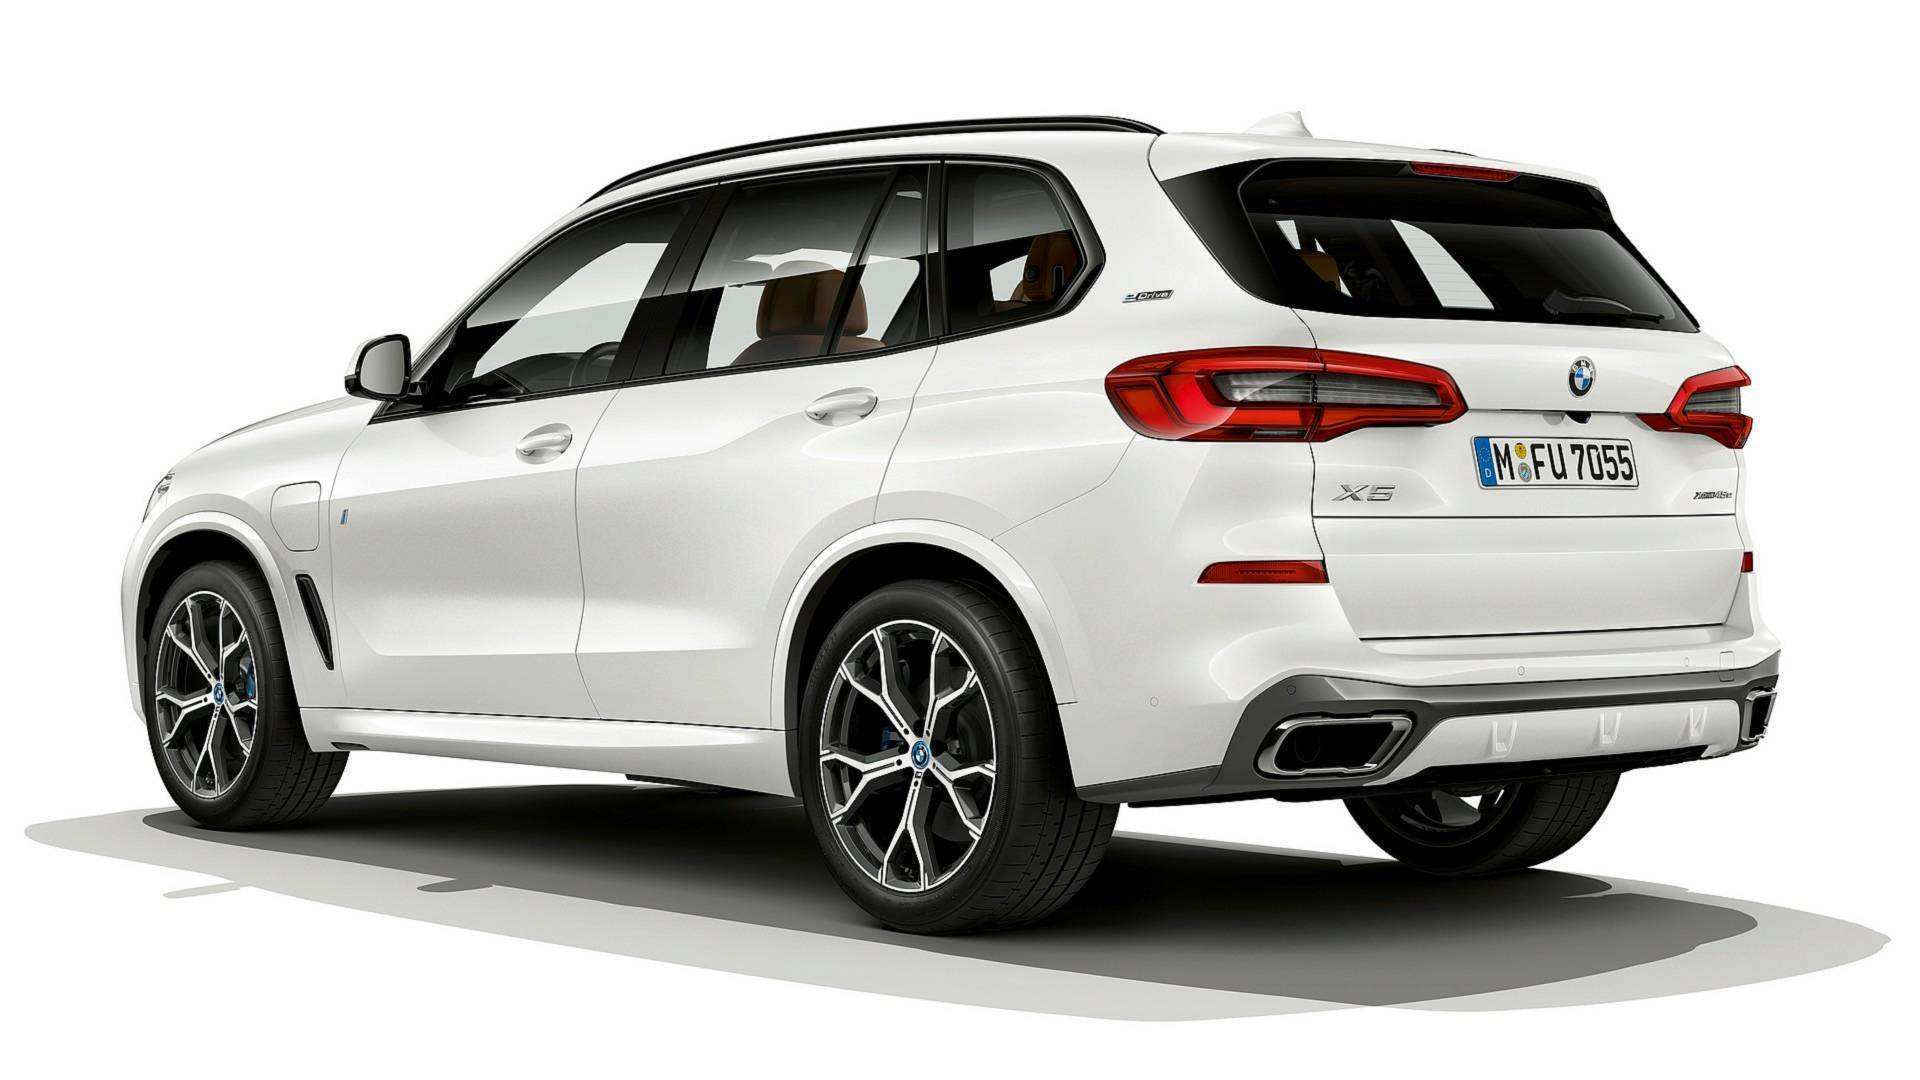 91 Gallery of 2019 Bmw X5 Diesel Pictures for 2019 Bmw X5 Diesel